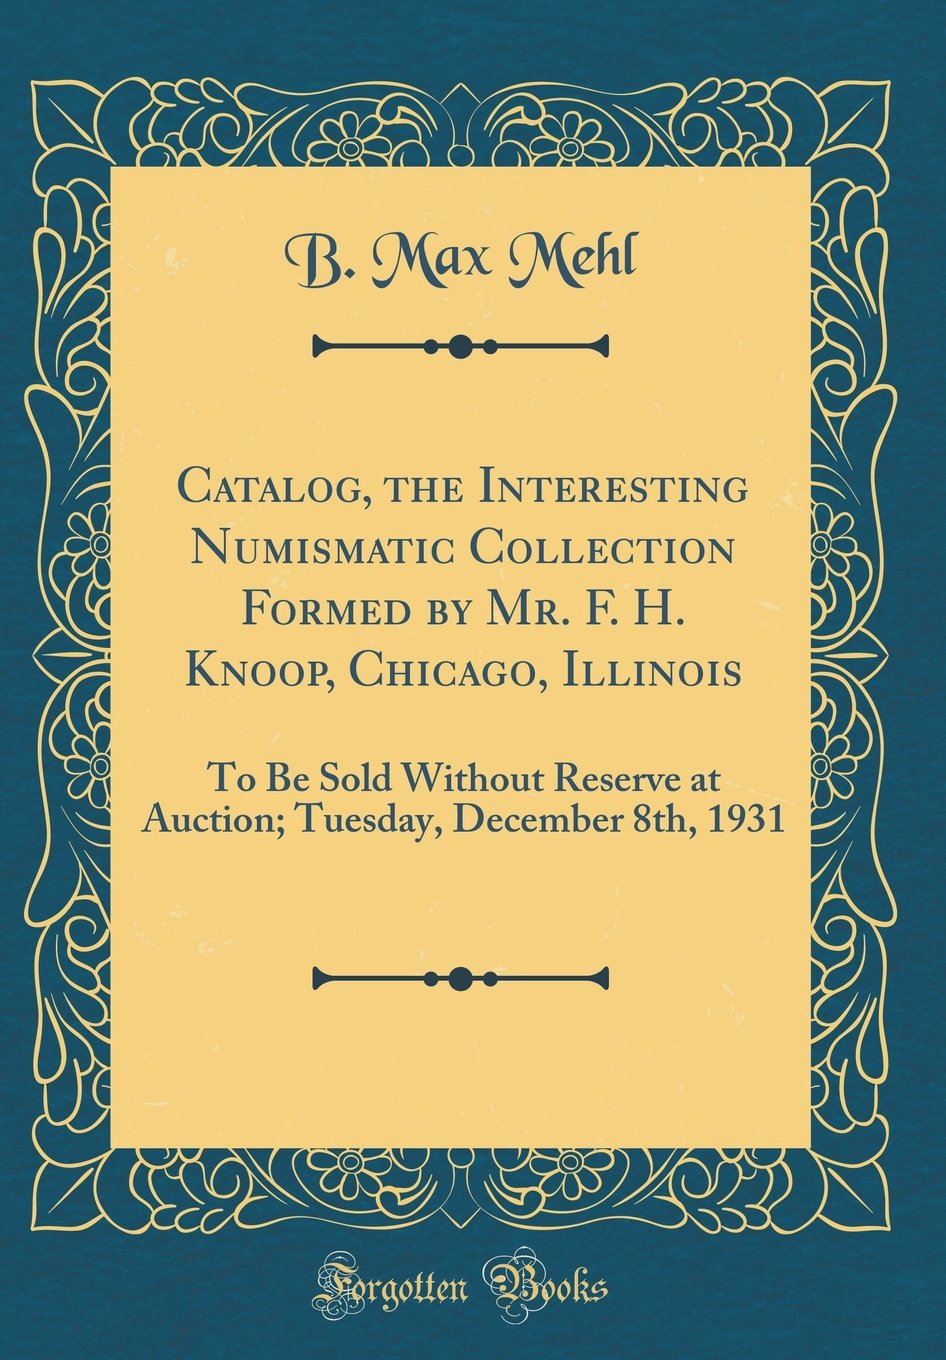 Catalog, the Interesting Numismatic Collection Formed by Mr. F. H. Knoop, Chicago, Illinois: To Be Sold Without Reserve at Auction; Tuesday, December 8th, 1931 (Classic Reprint) ebook